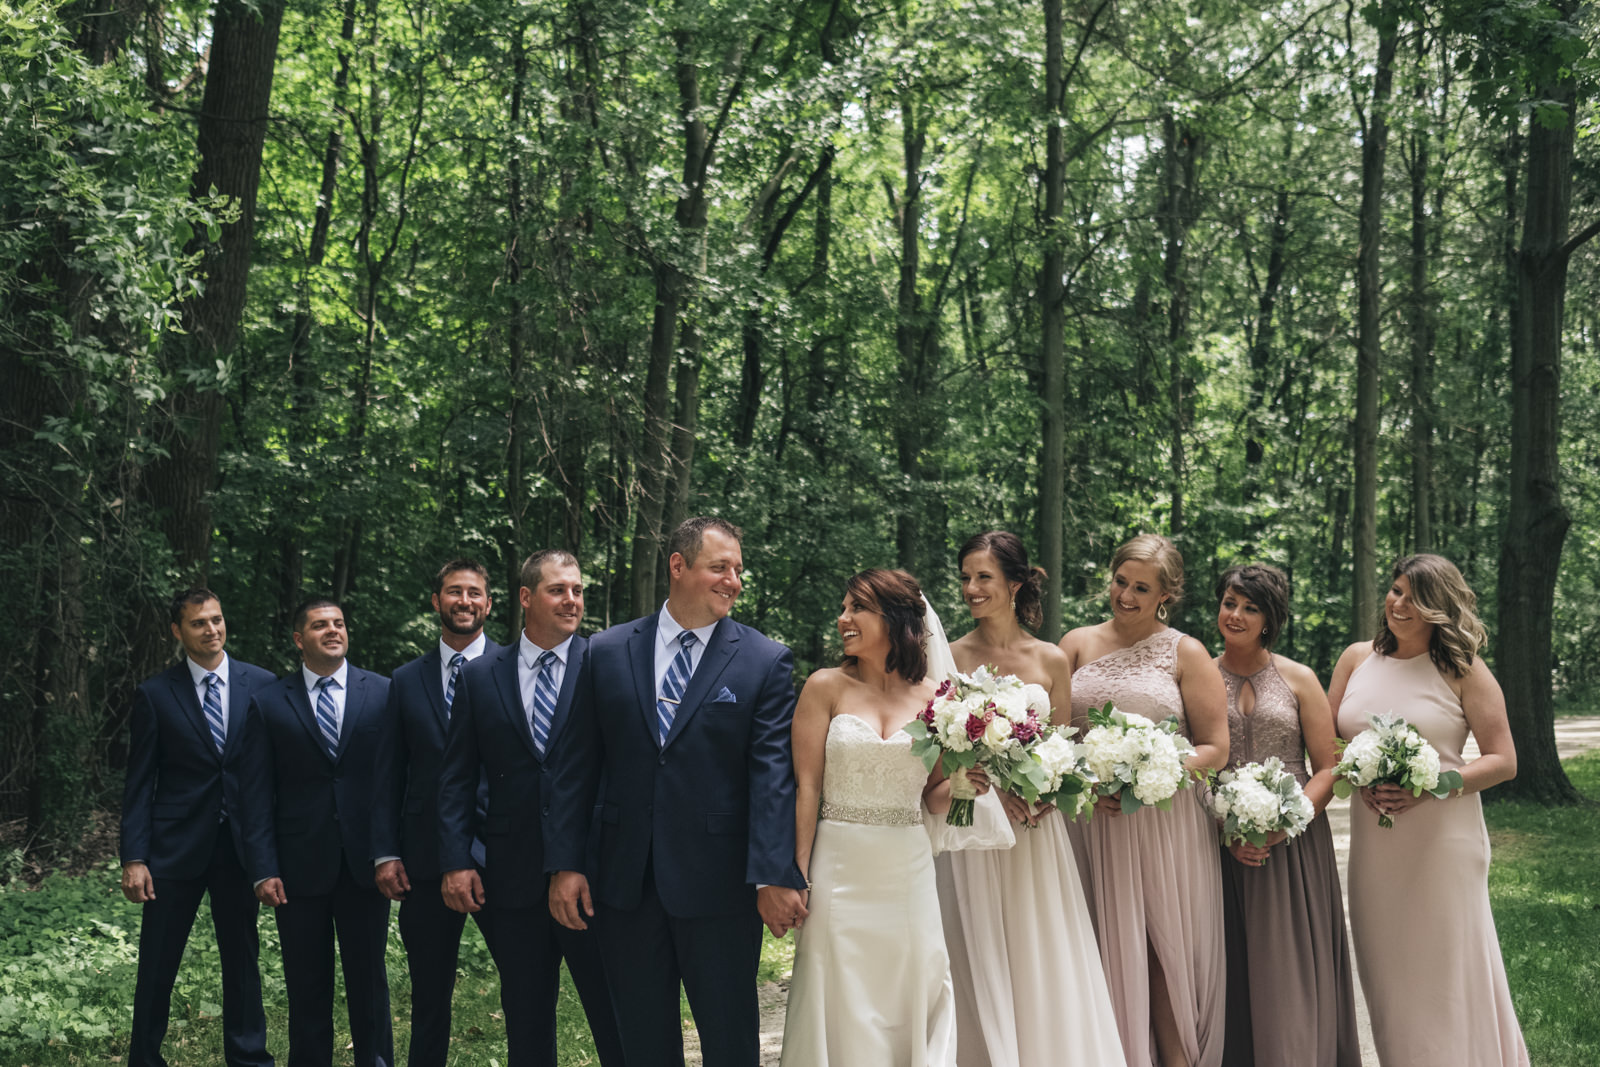 Group bridal party picture before wedding ceremony.